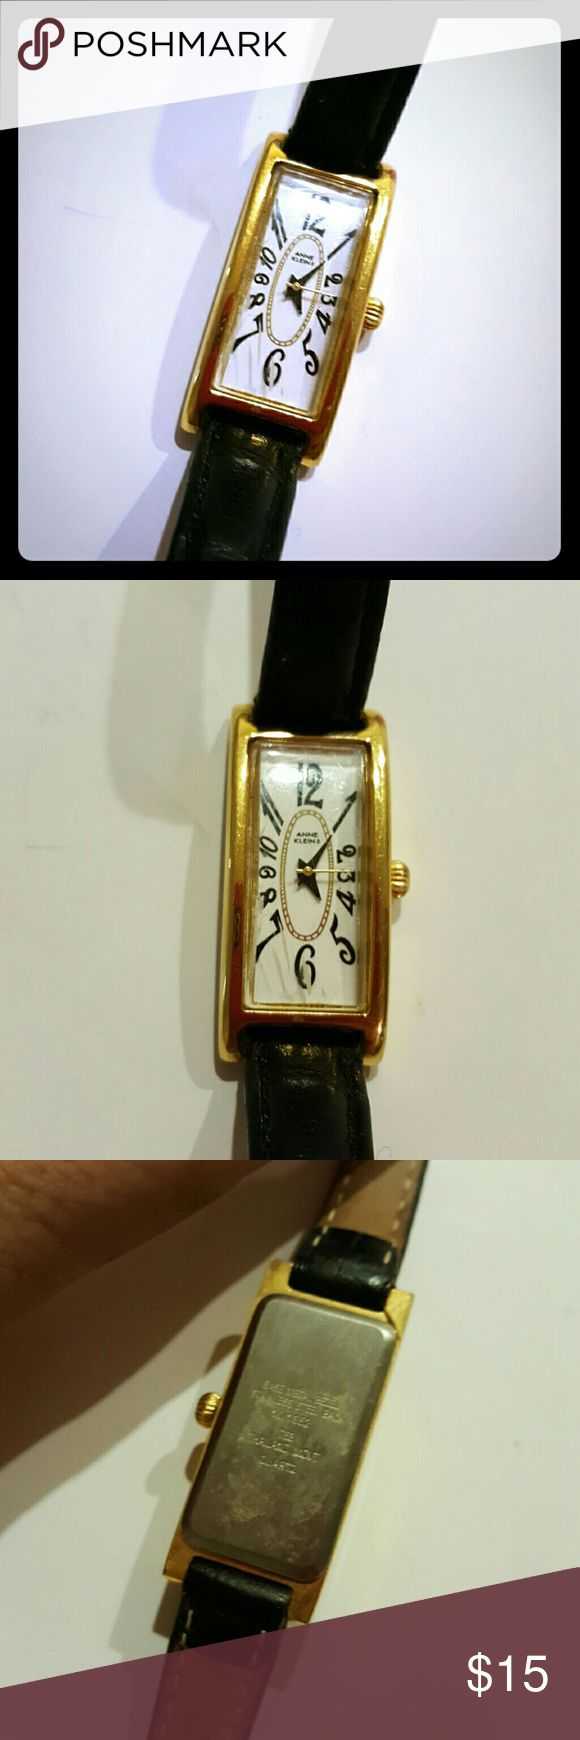 VTG 80s Anne Klein vintage watch Anne Klein vintage watch needs batteries black leather band Anne Klein Accessories Watches